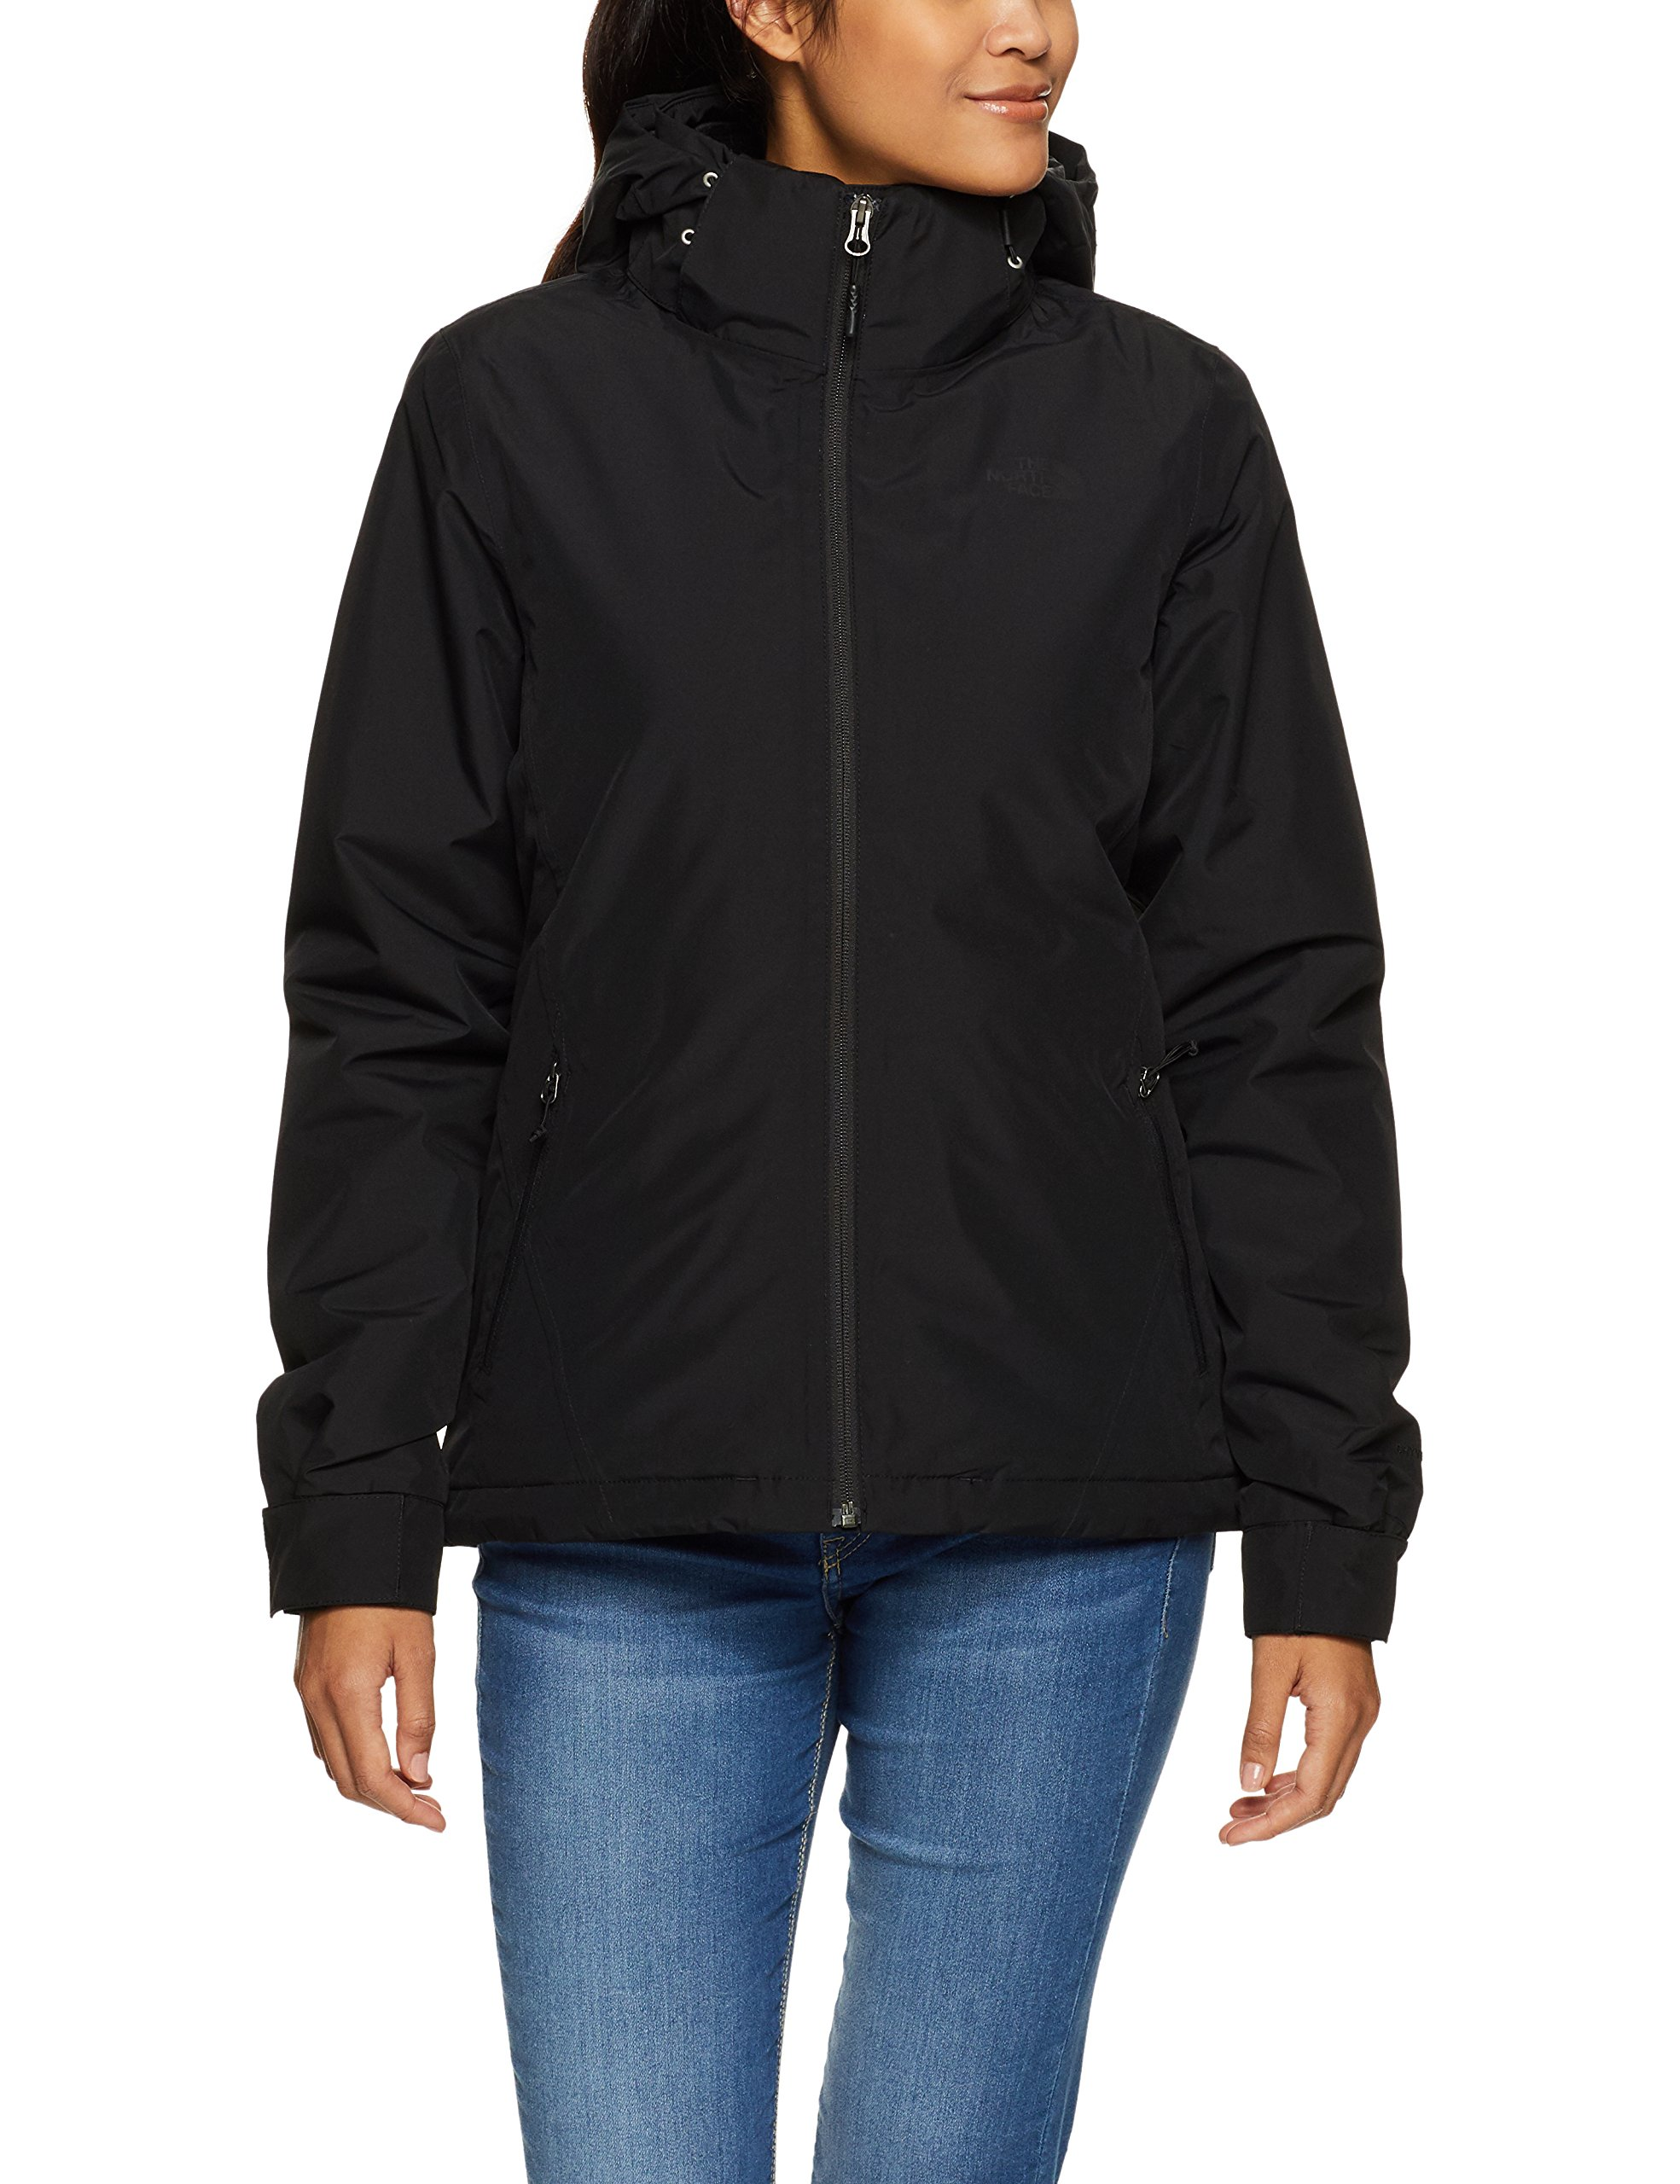 North Face Whestridge Triclimate Jacket Womens Style : A35E4-KX7 Size : L